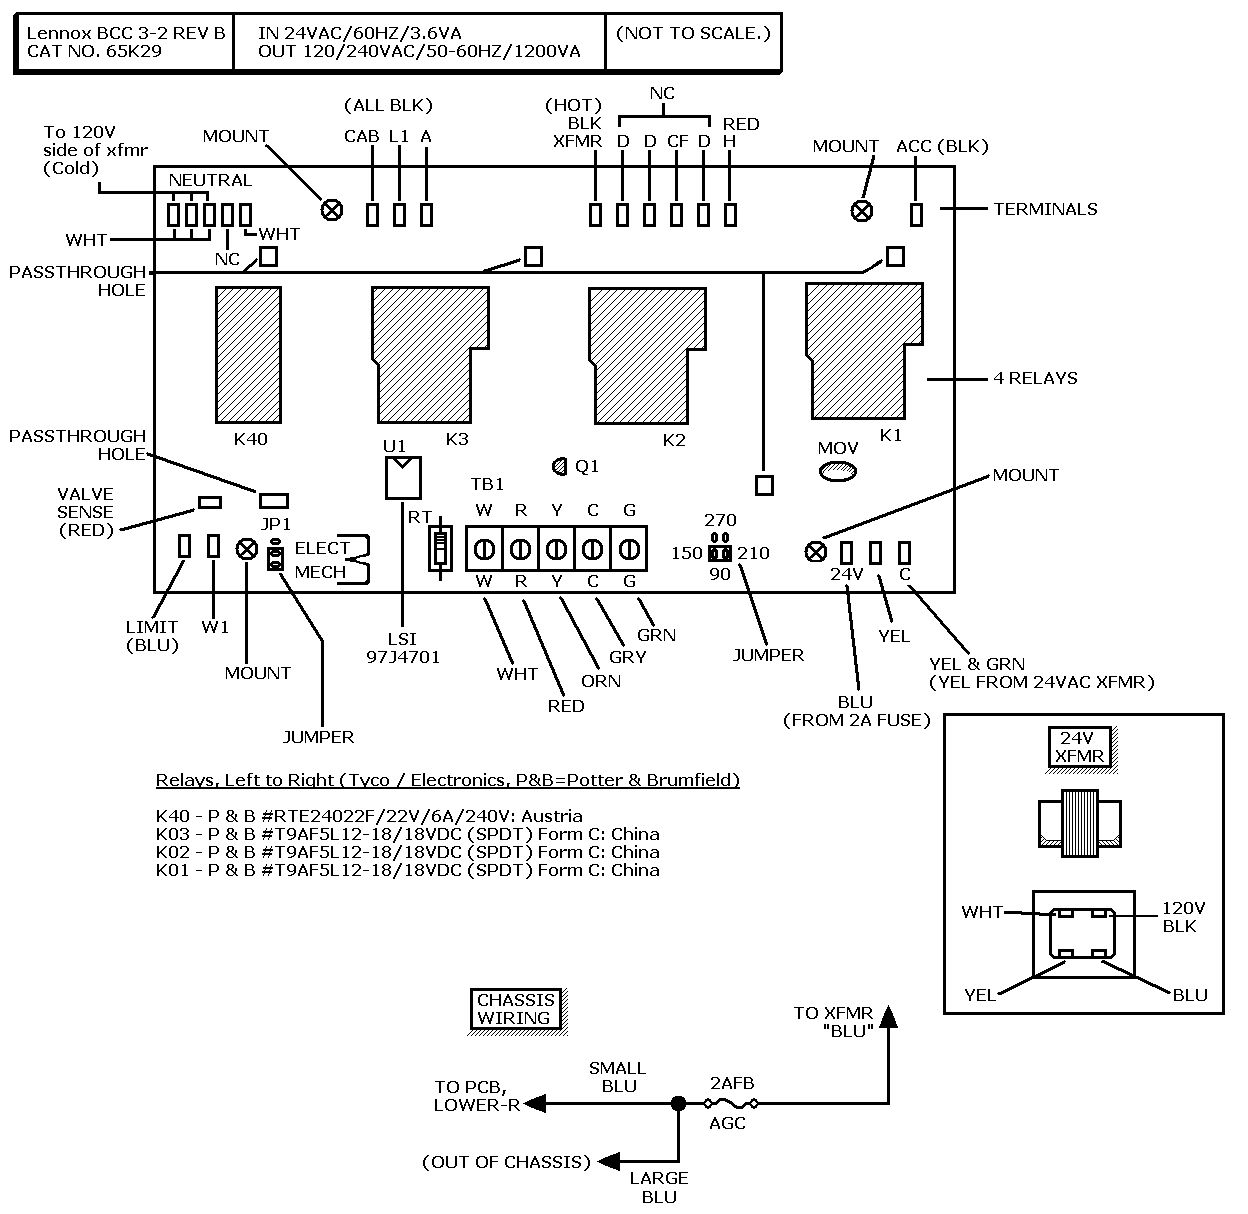 Pin on Lennox Conservator III G16XQ4753 Wiring Diagrams